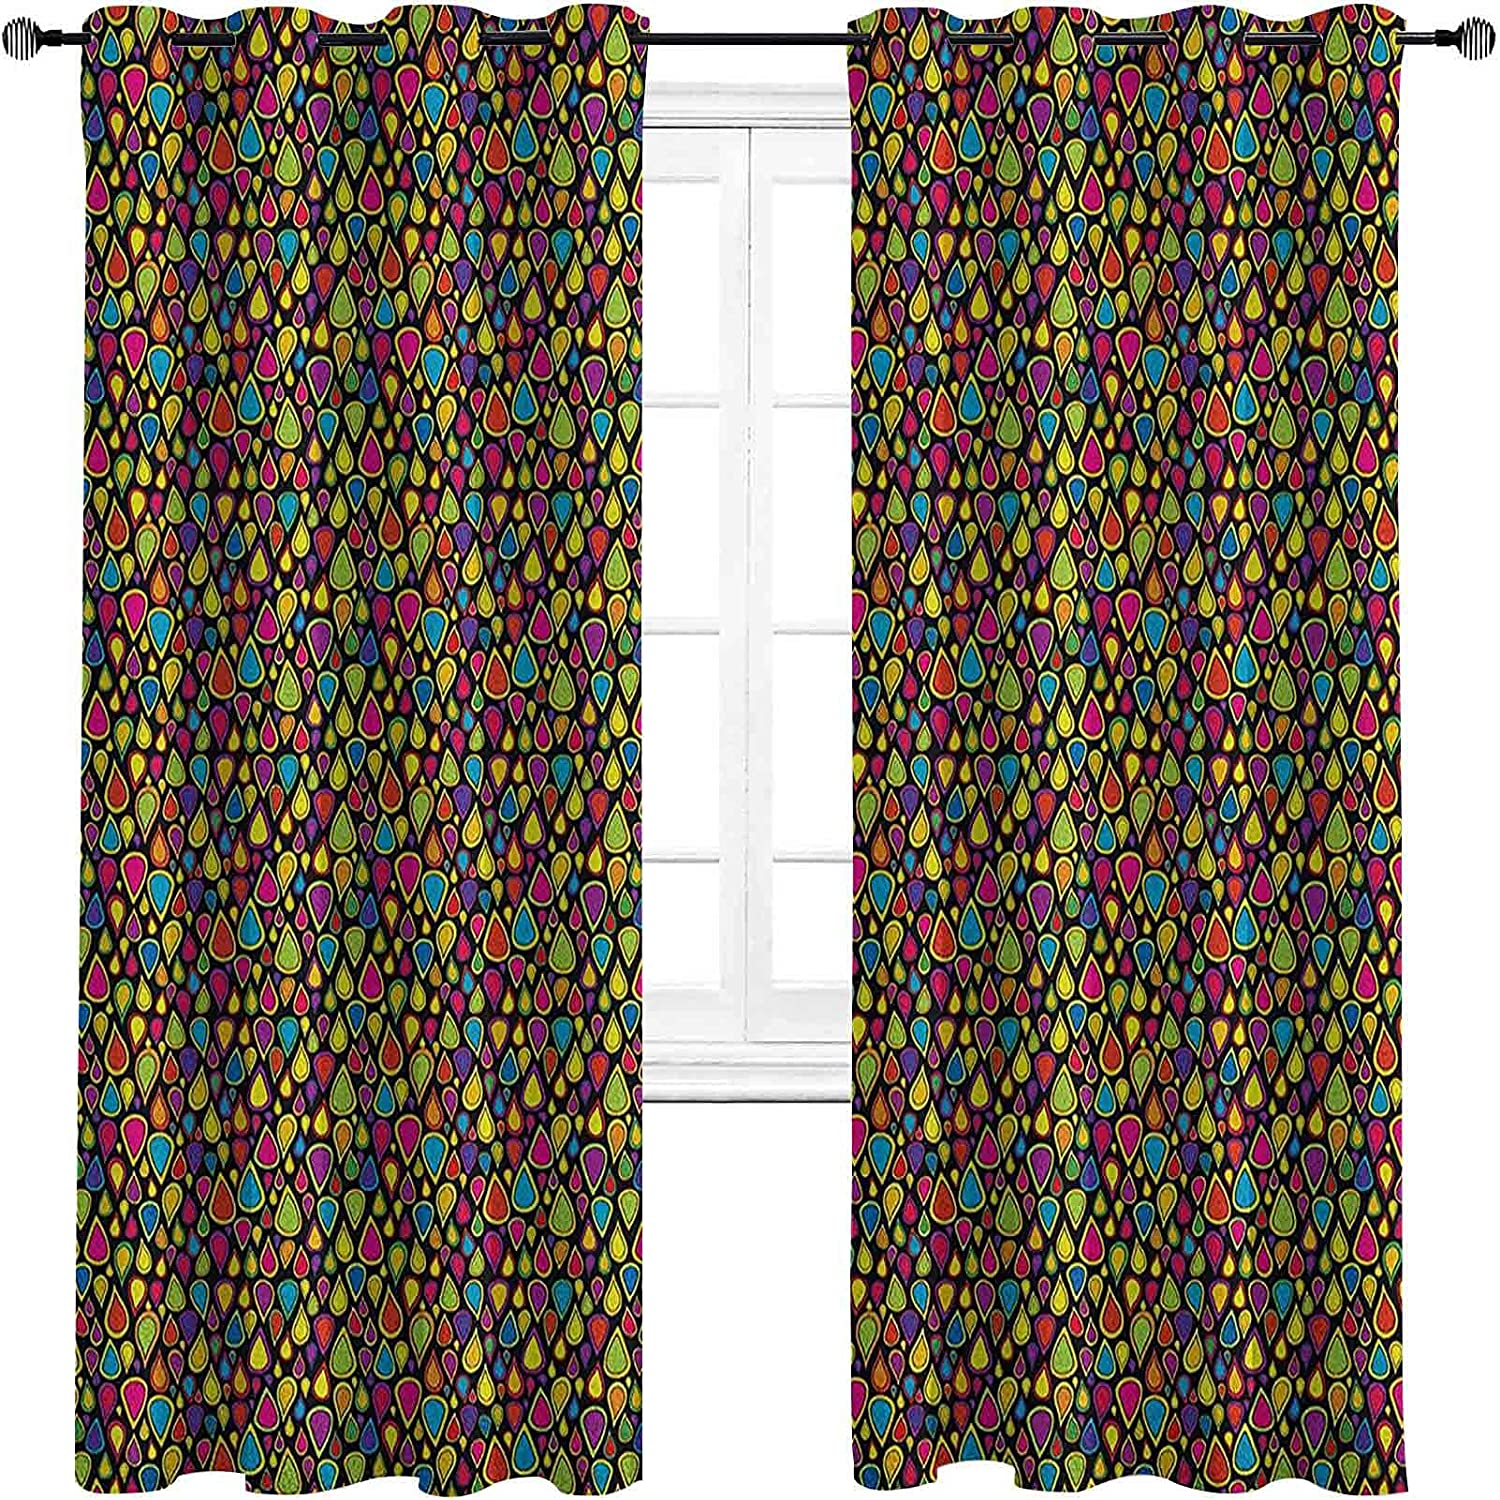 Sixties Bedroom Blackout 5 ☆ New Shipping Free Shipping popular Curtains Colorful Teardrop Shapes Patt